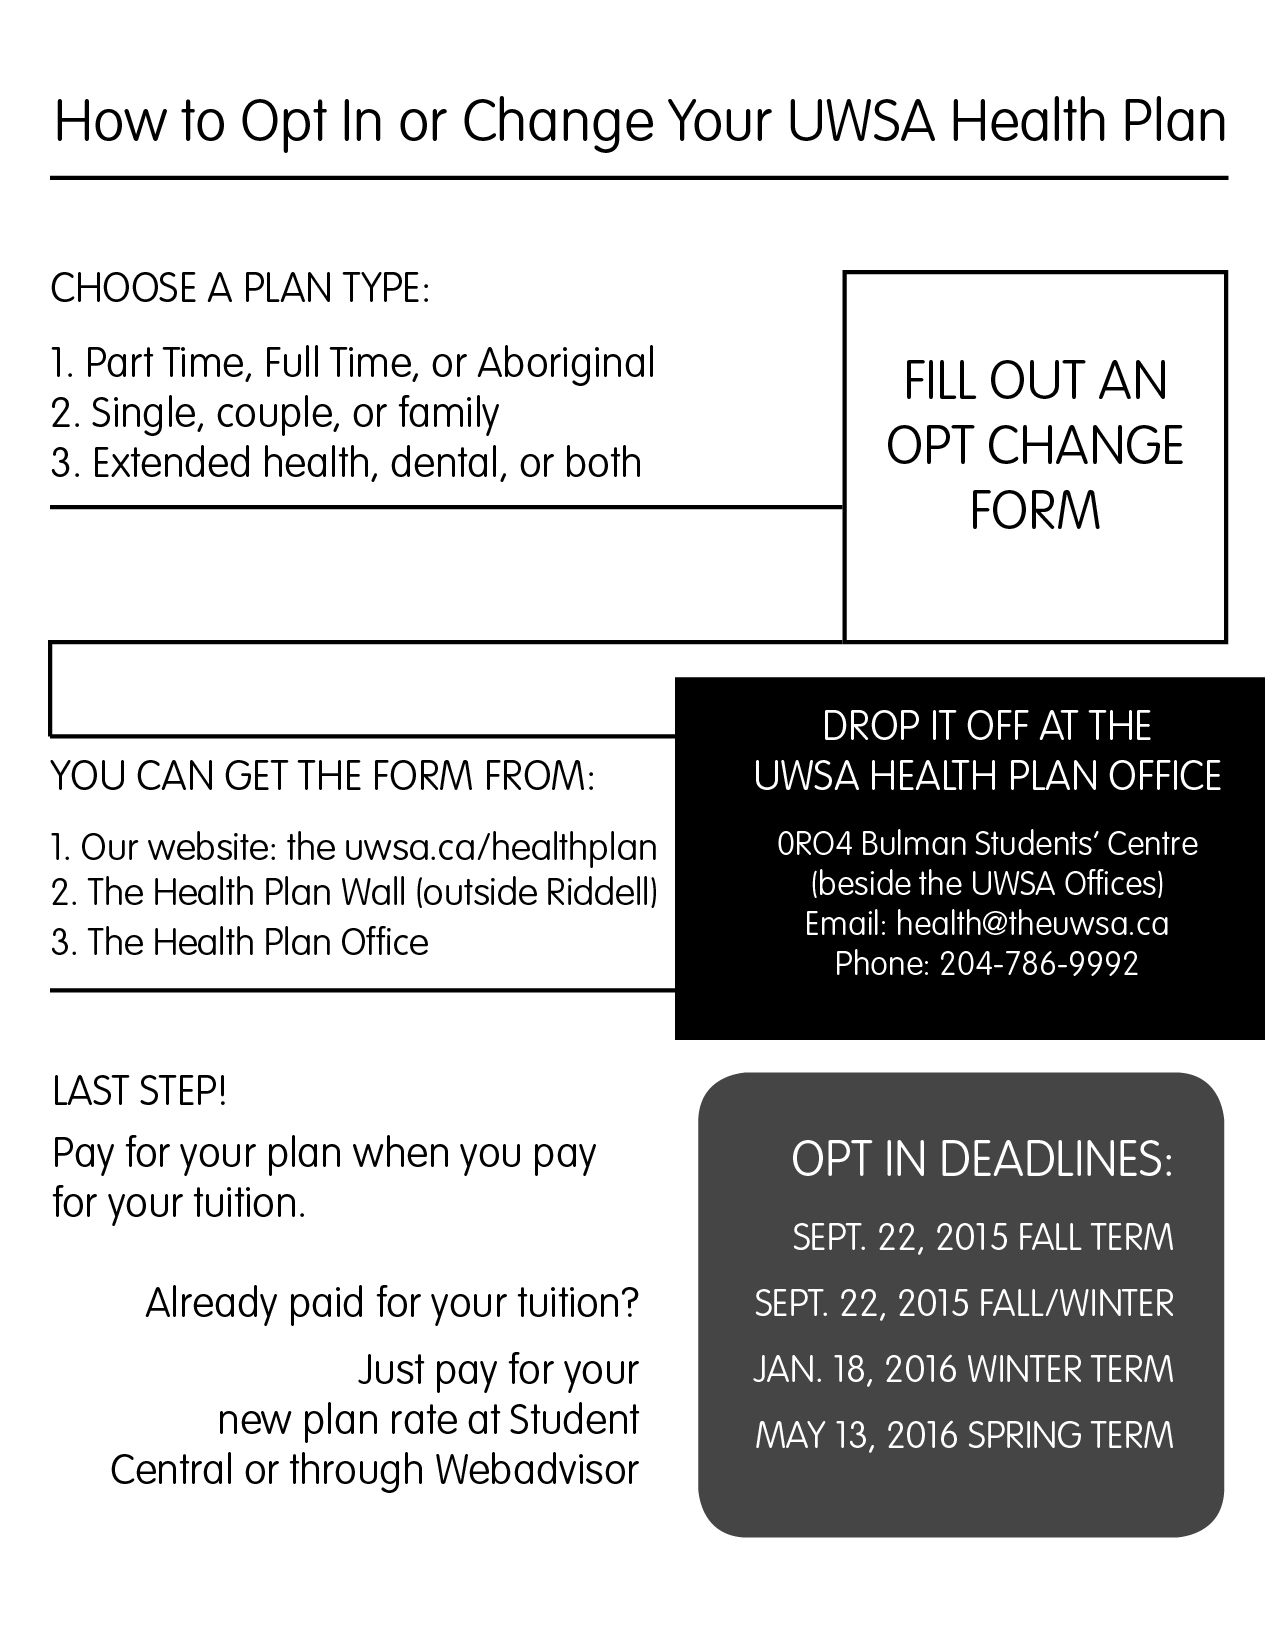 Check Out How To Opt In Or Change Your Plan Health Plan Faqs « The Uwsa